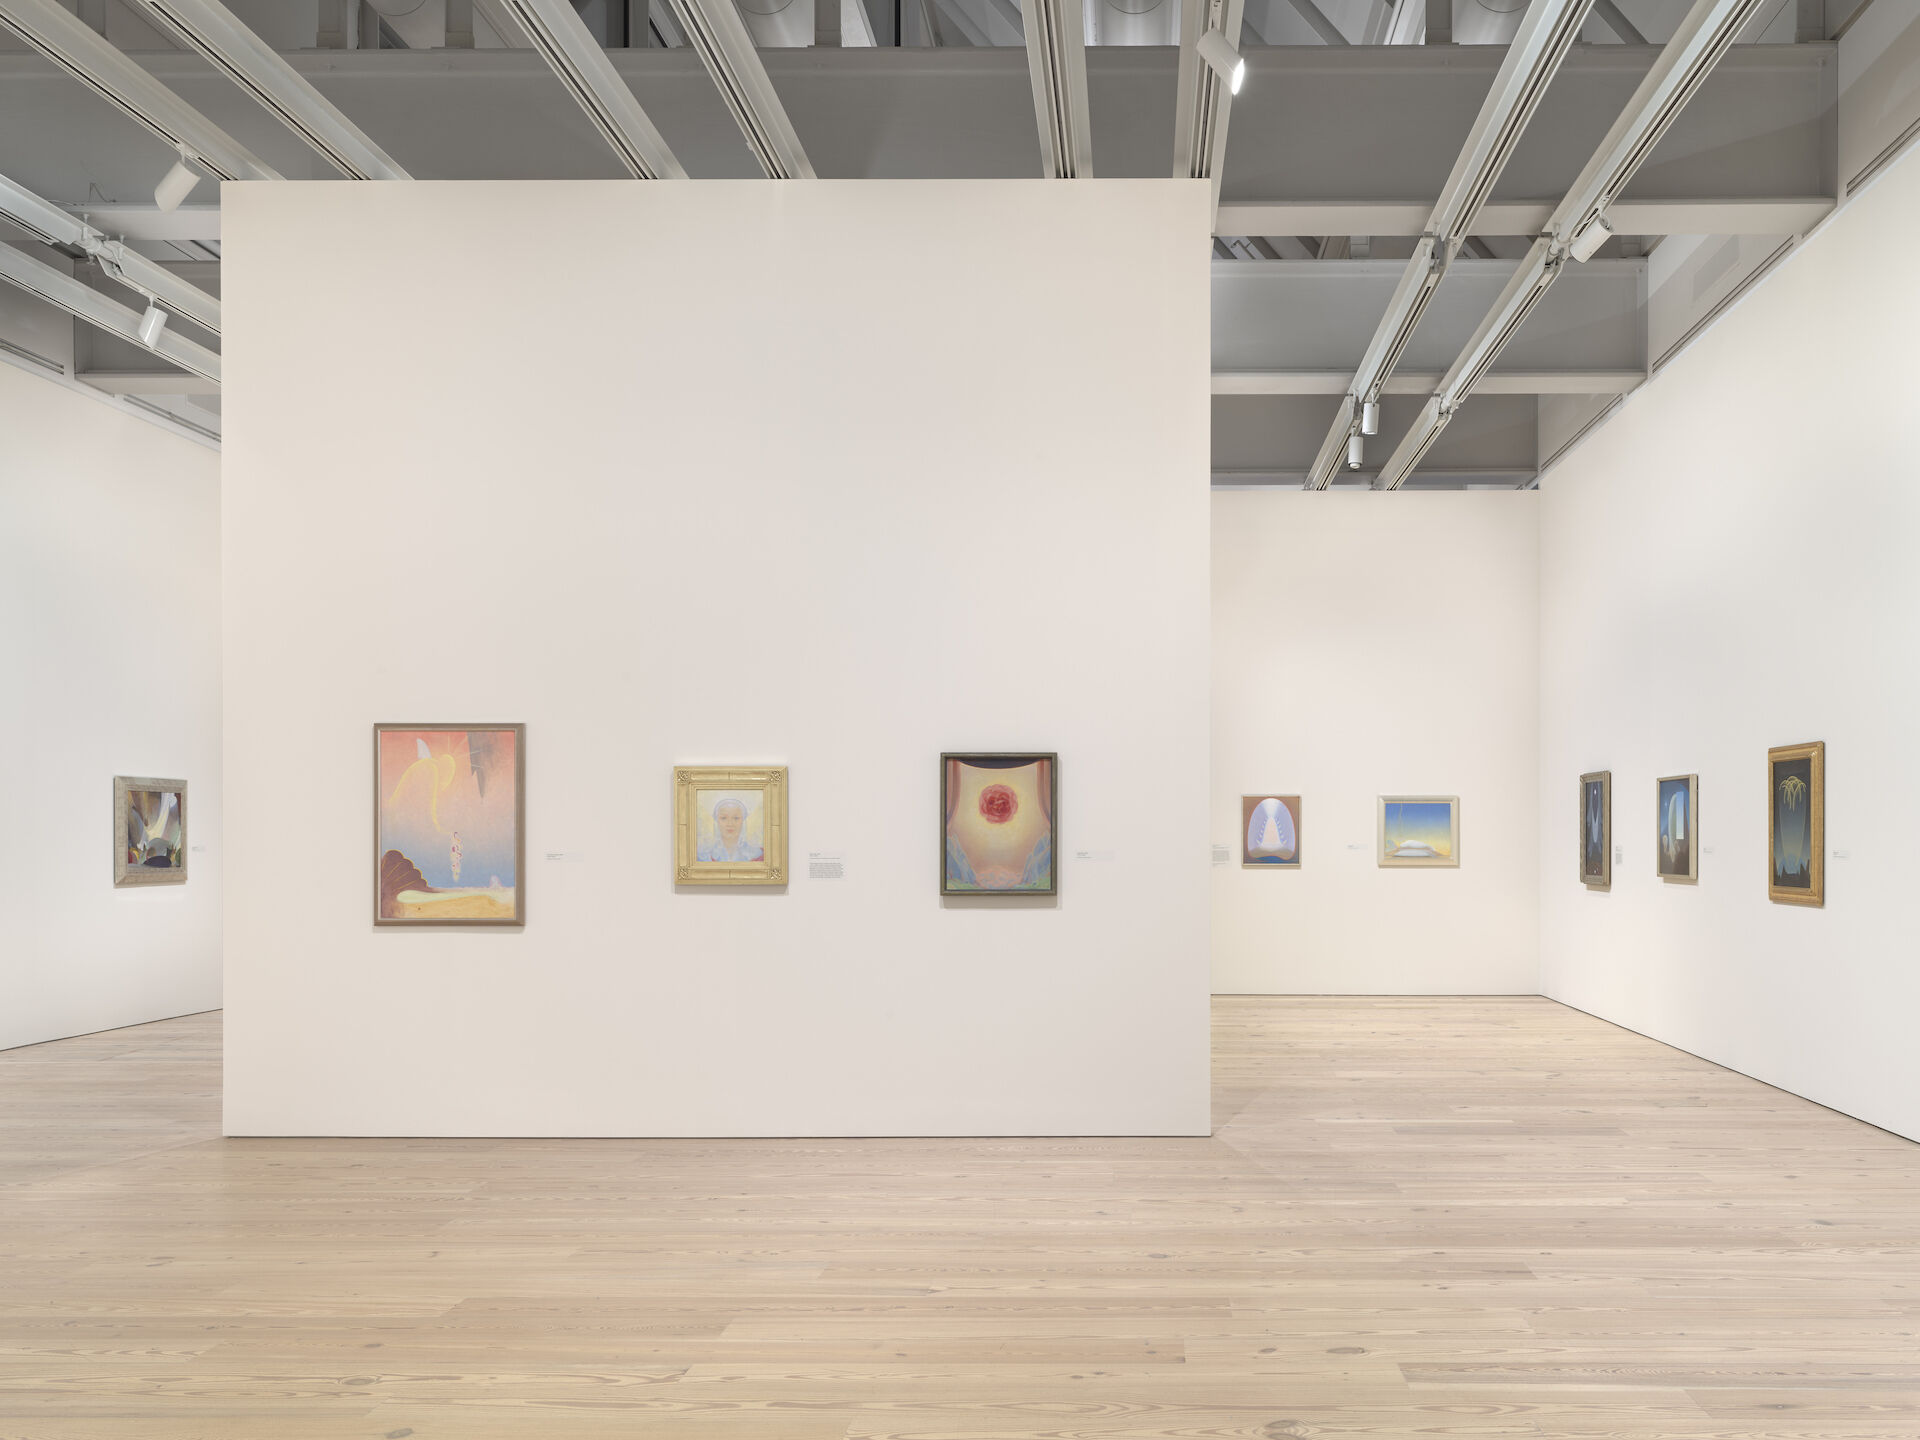 White exhibition walls appear at the end of a room at the Whitney. The walls contain paintings from Agnes Pelton: Desert Transcendentalist, including First Spring Garland, 1926; Barna Dilae, 1935; Incarnation, 1929; Mount of Flame, 1932, and more.